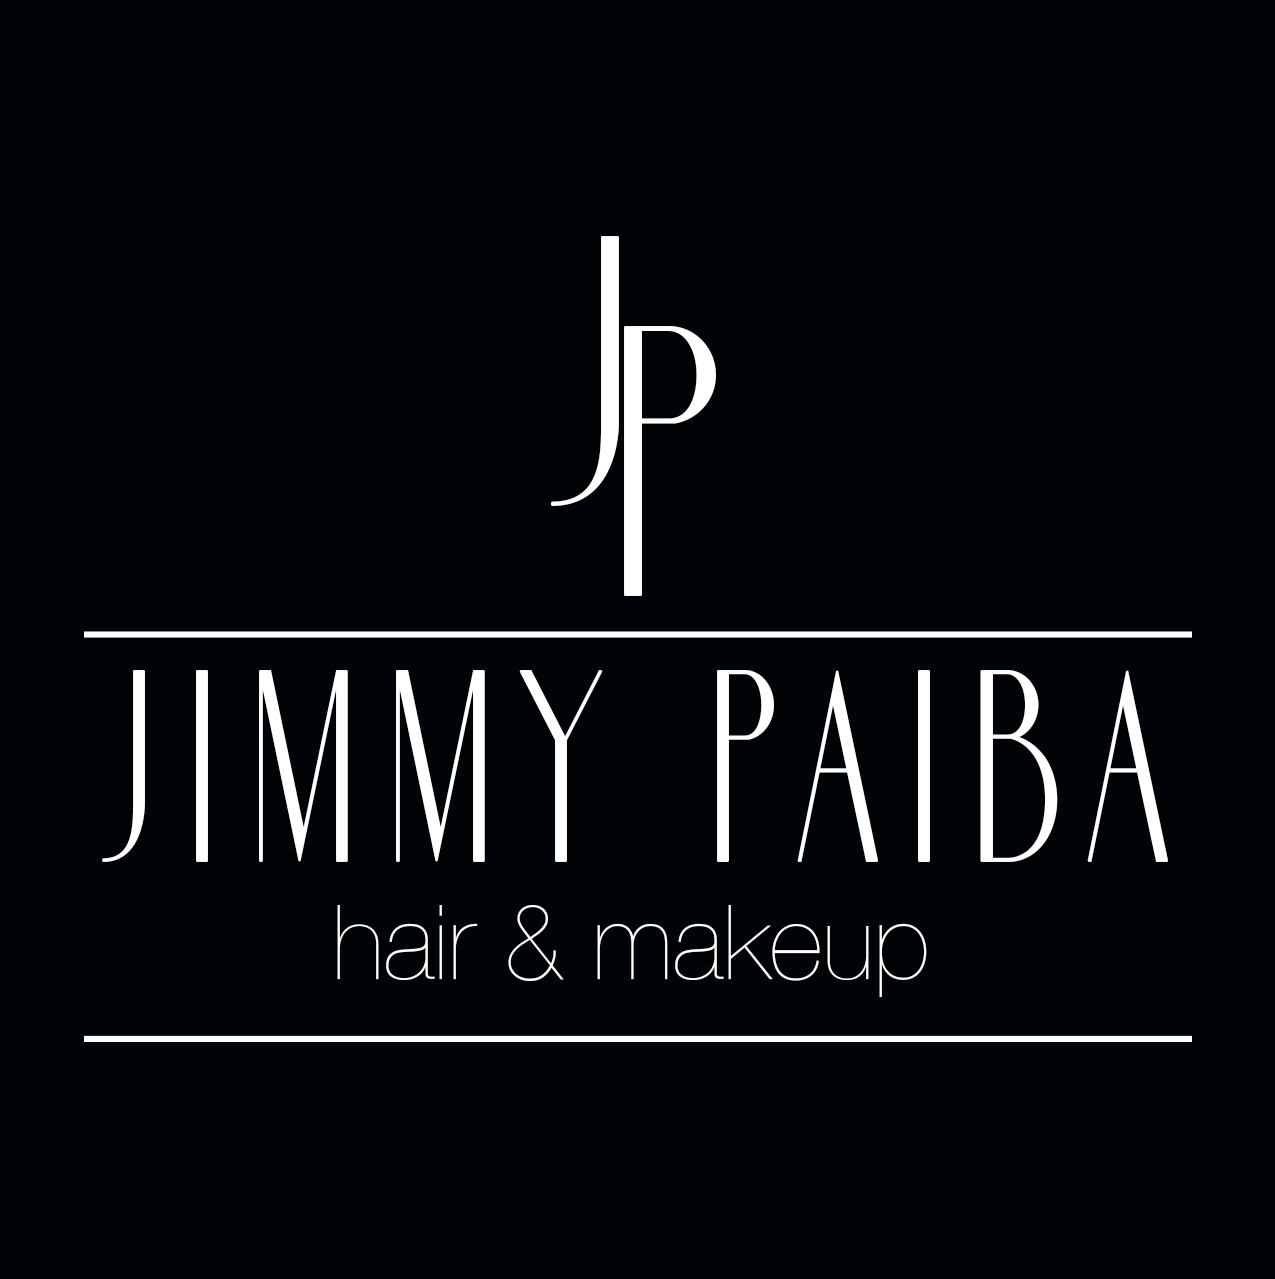 Jimmy Paiba